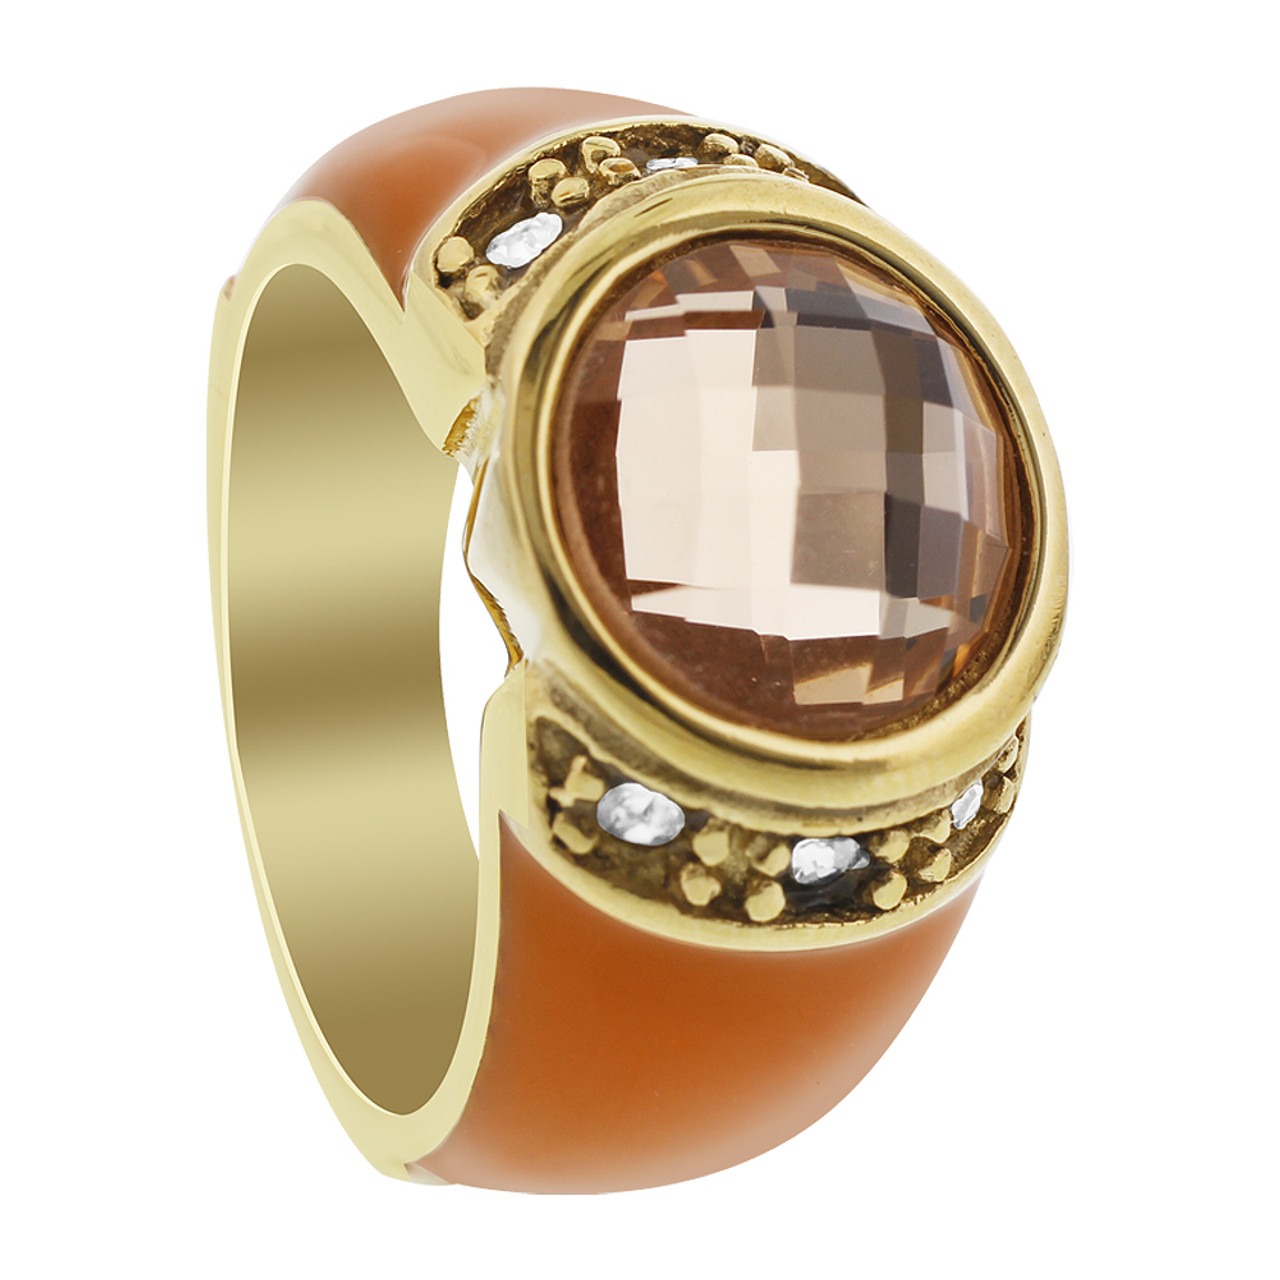 Stainless Steel Orange Enamel with Solitaire Citrine Color CZ Accents Ring